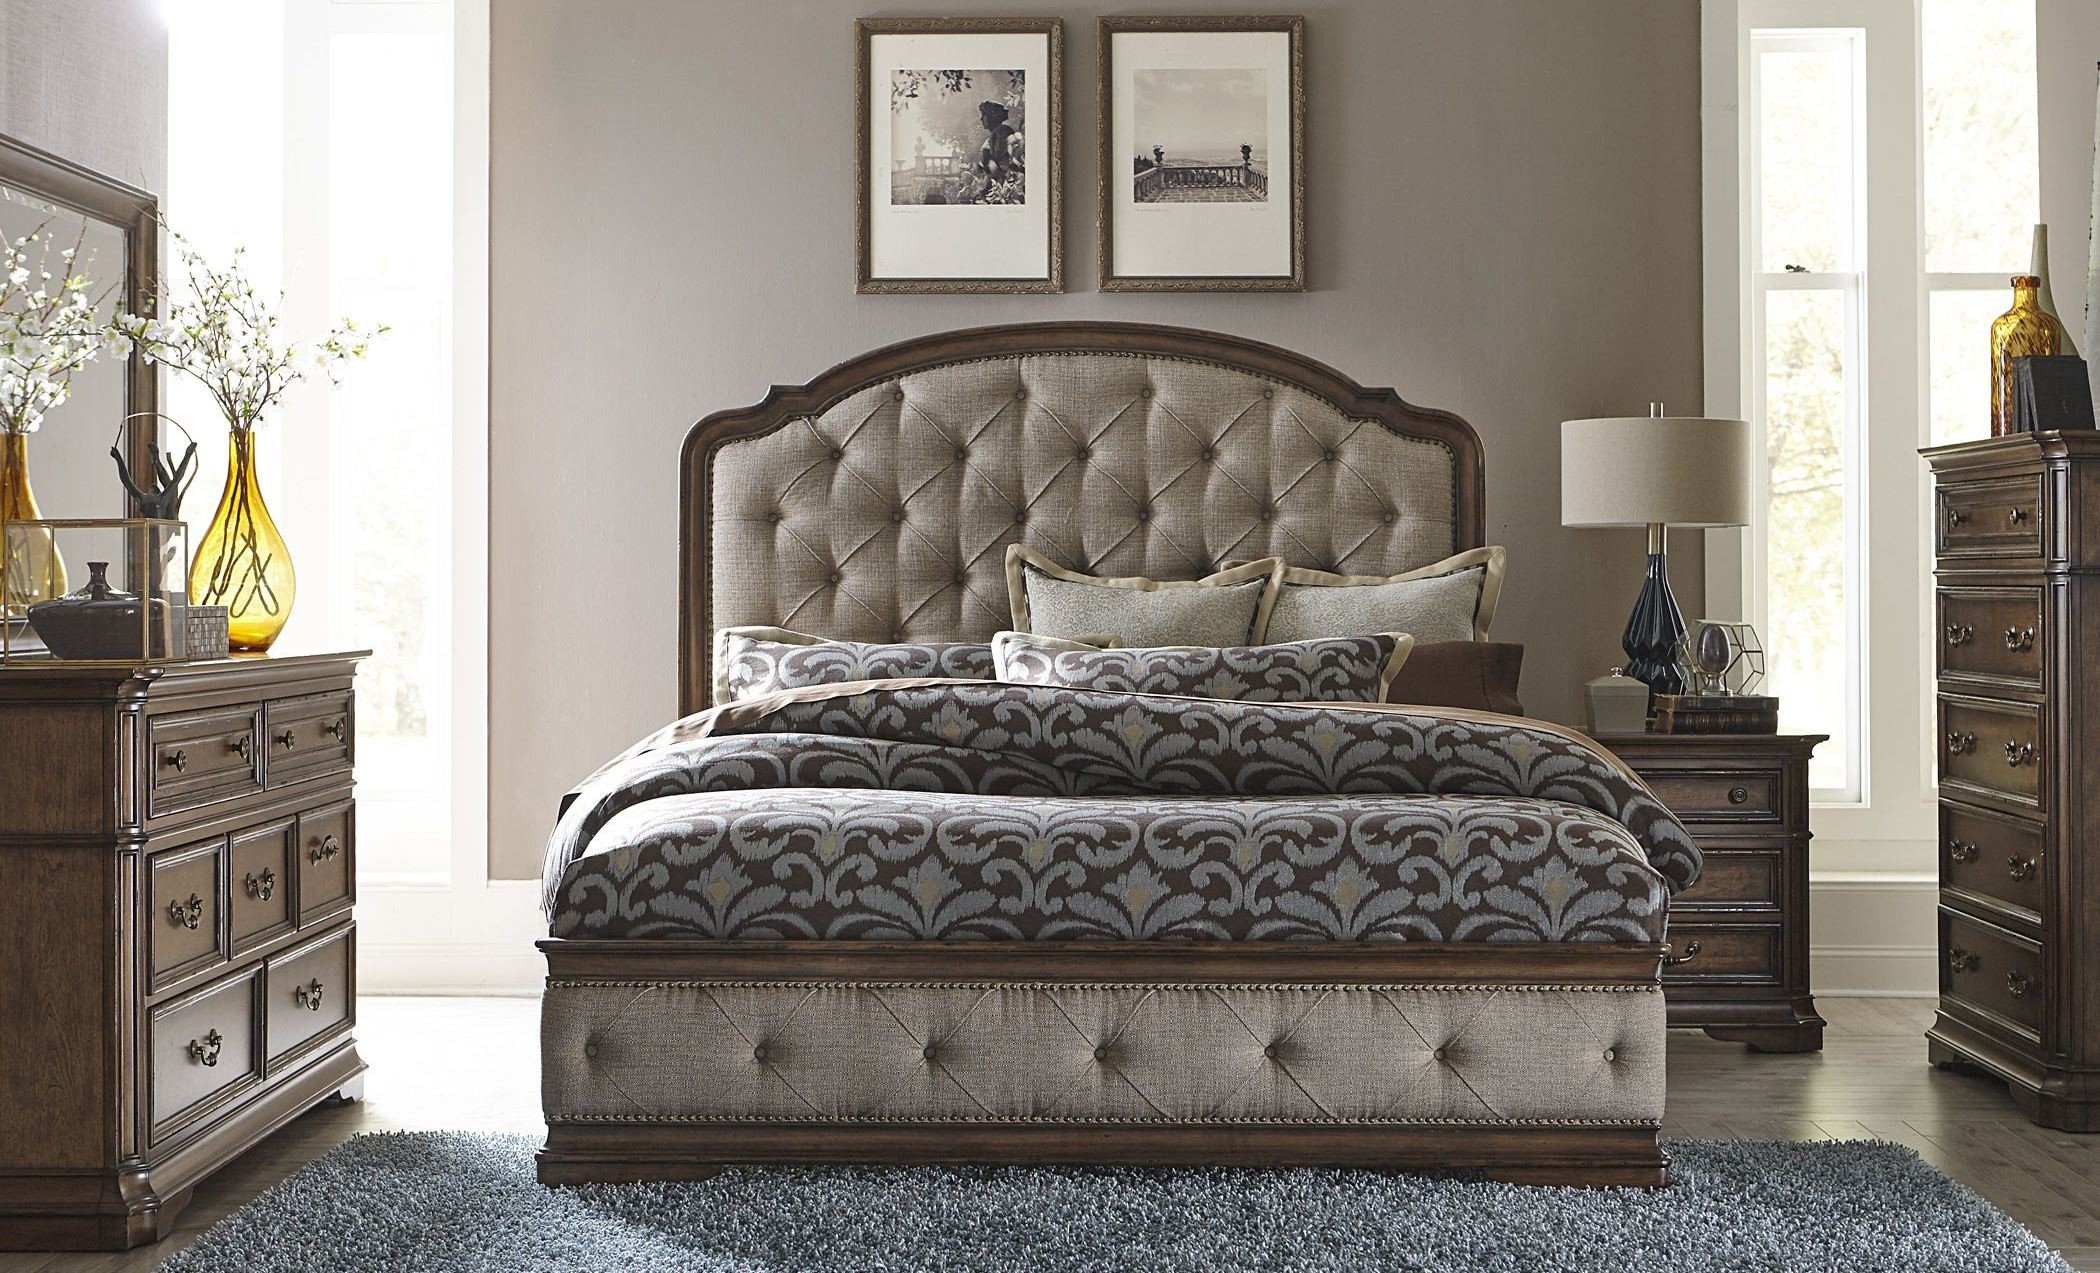 Amelia Antique Toffee Upholstered Mansion Bedroom Set from ...